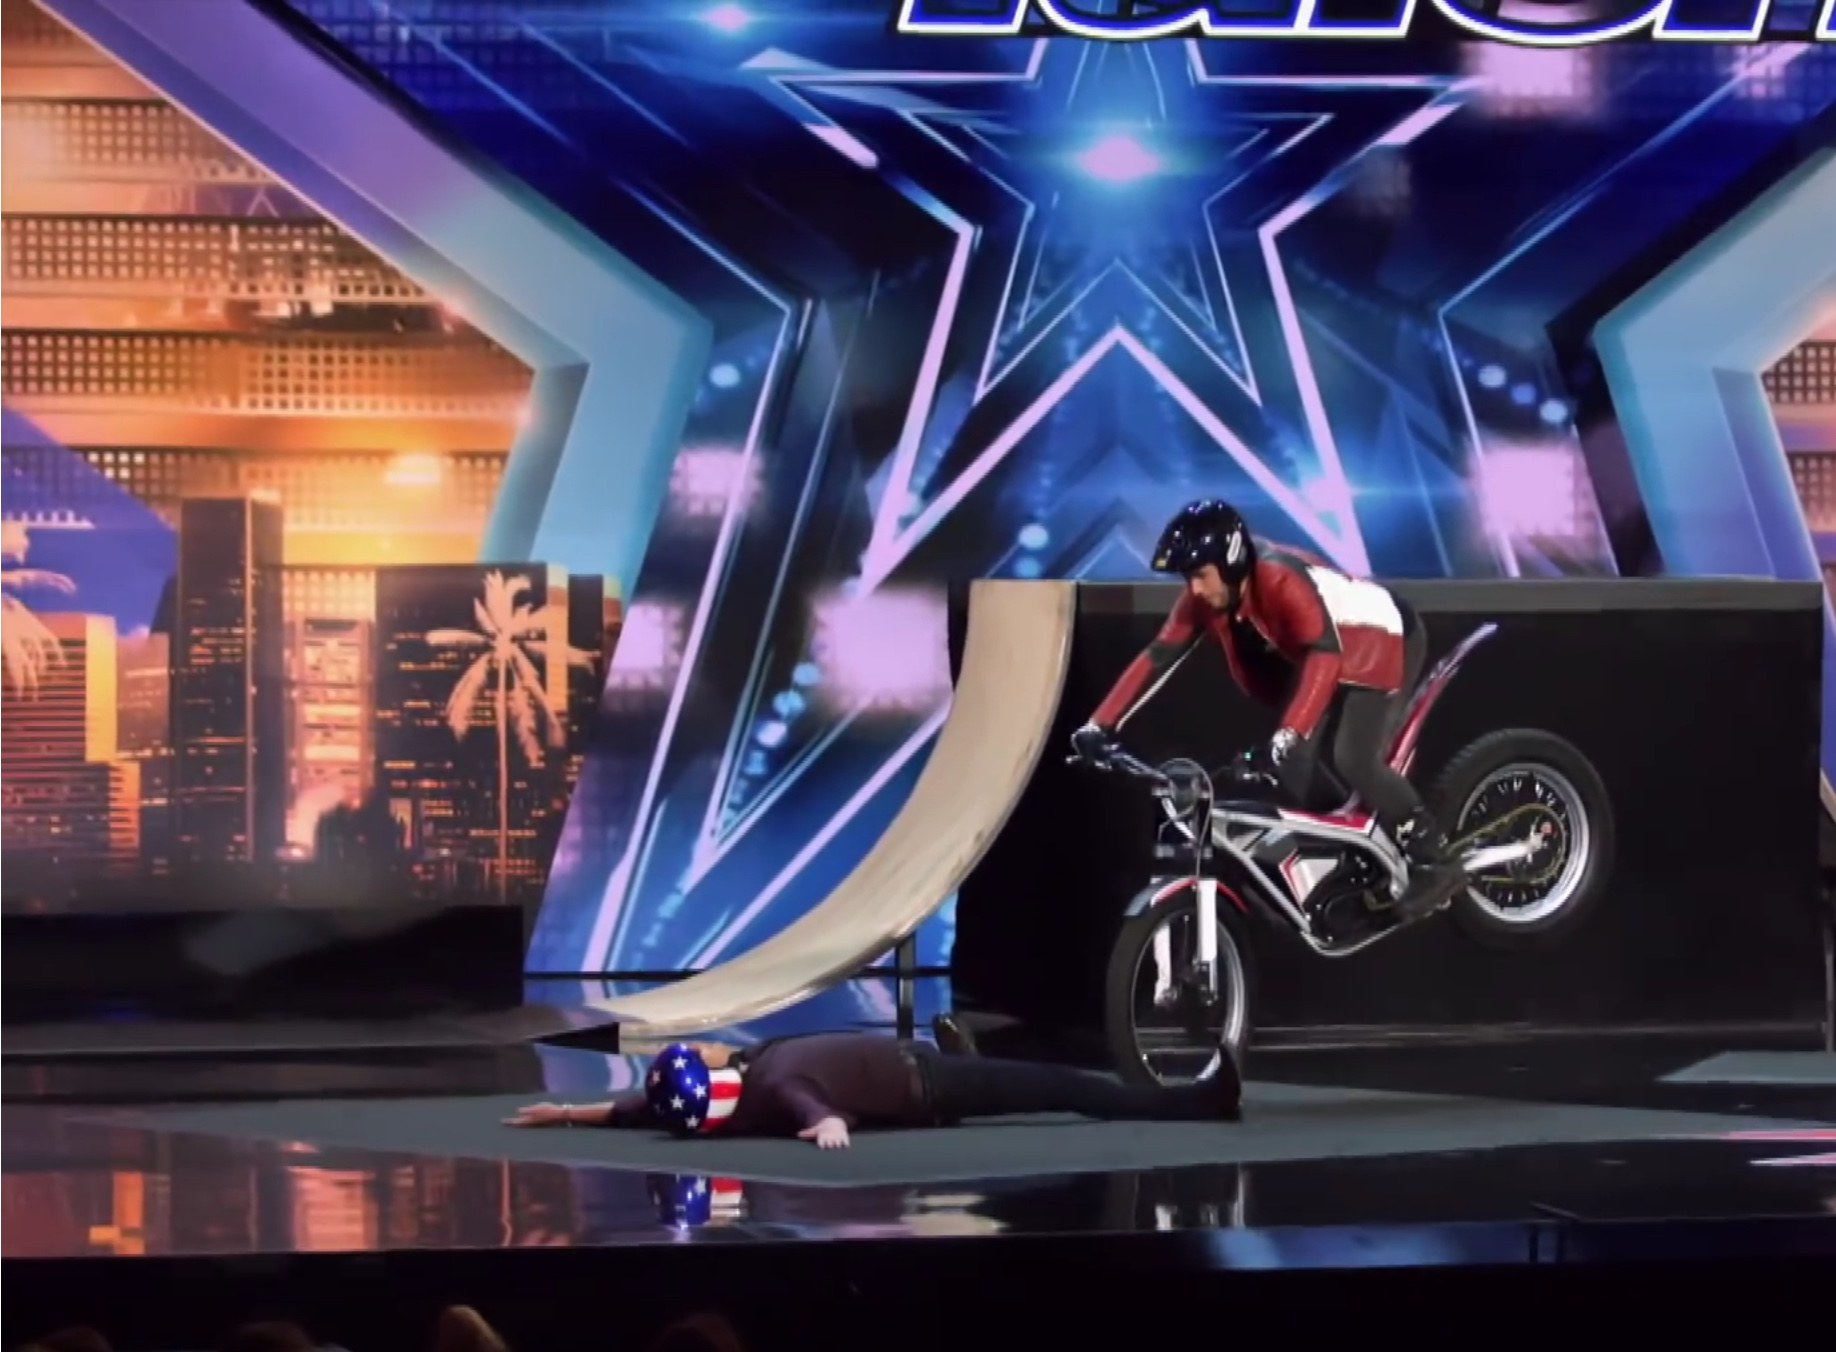 Trials rider terrifies America's Got Talent judge